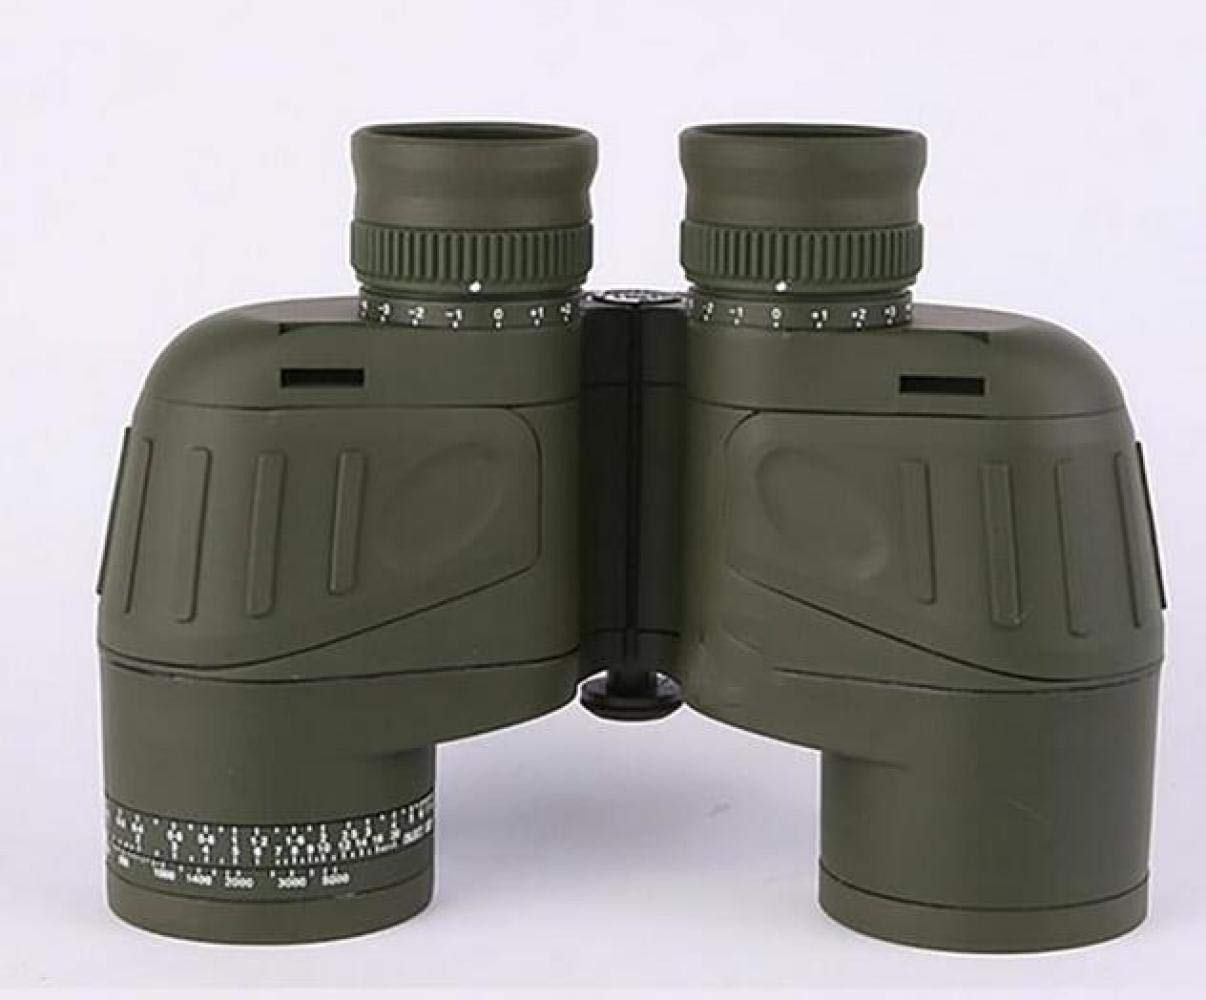 CTO Telescope 7X50 Binoculars Adult and Internal Range Finder Compass Waterproof Army Green Navigation, Boating, Fishing, Water Sports,A,Telescope by CTO (Image #5)